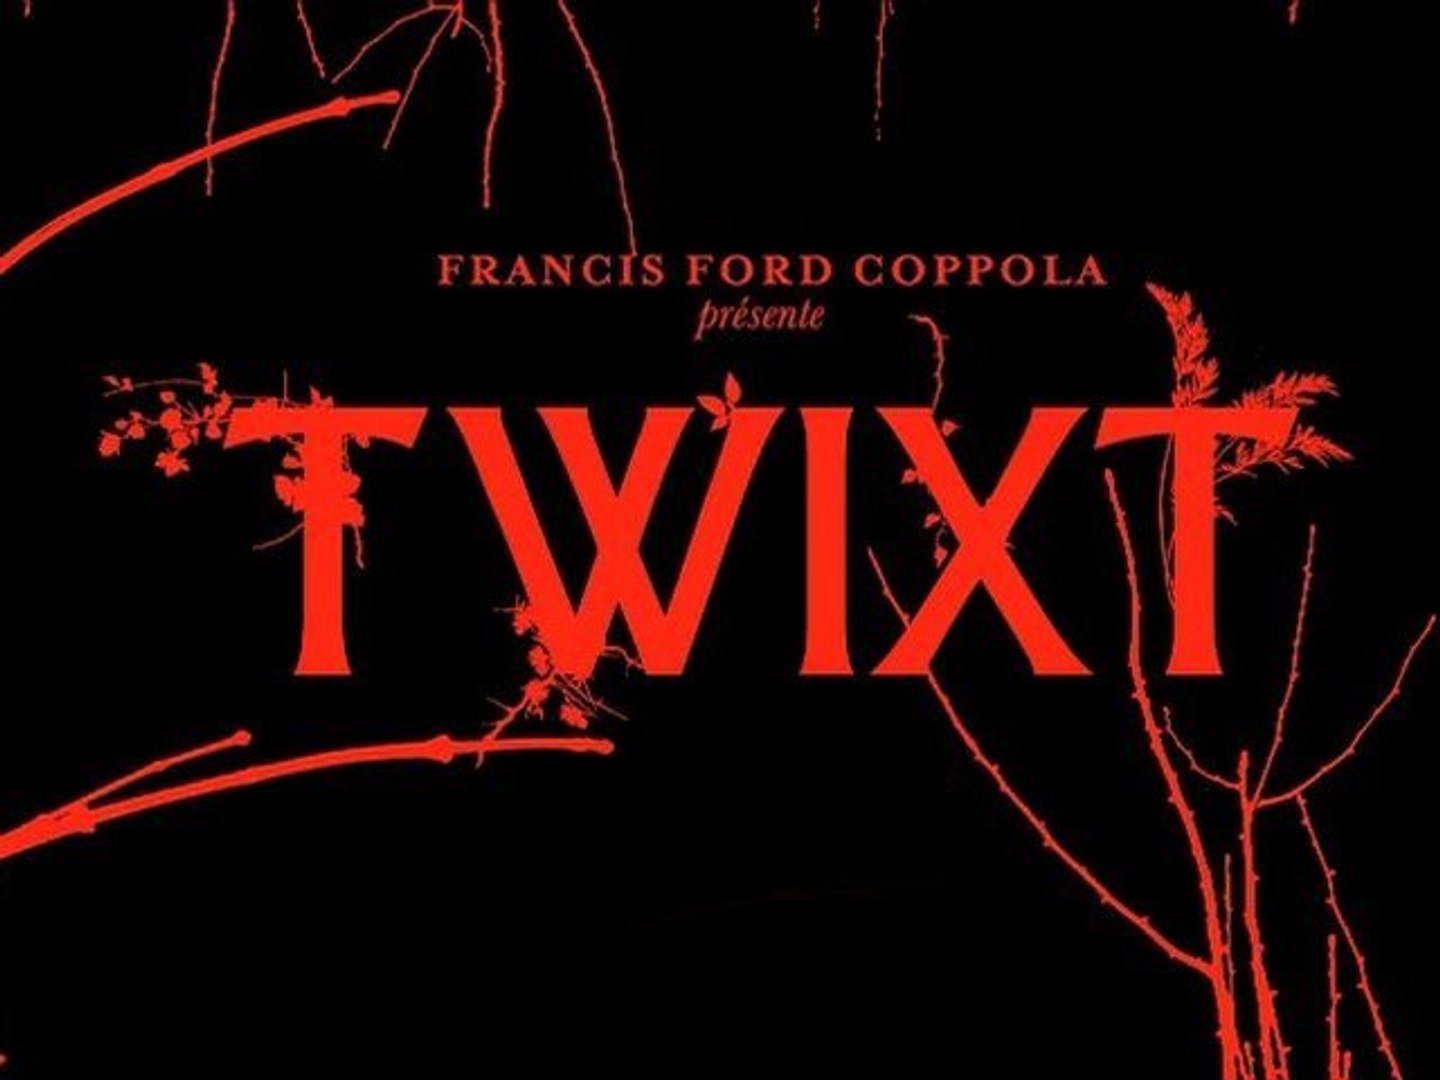 TWIXT -  (Francis Ford Coppola) Bande-Annonce / Trailer [VOST|HD]